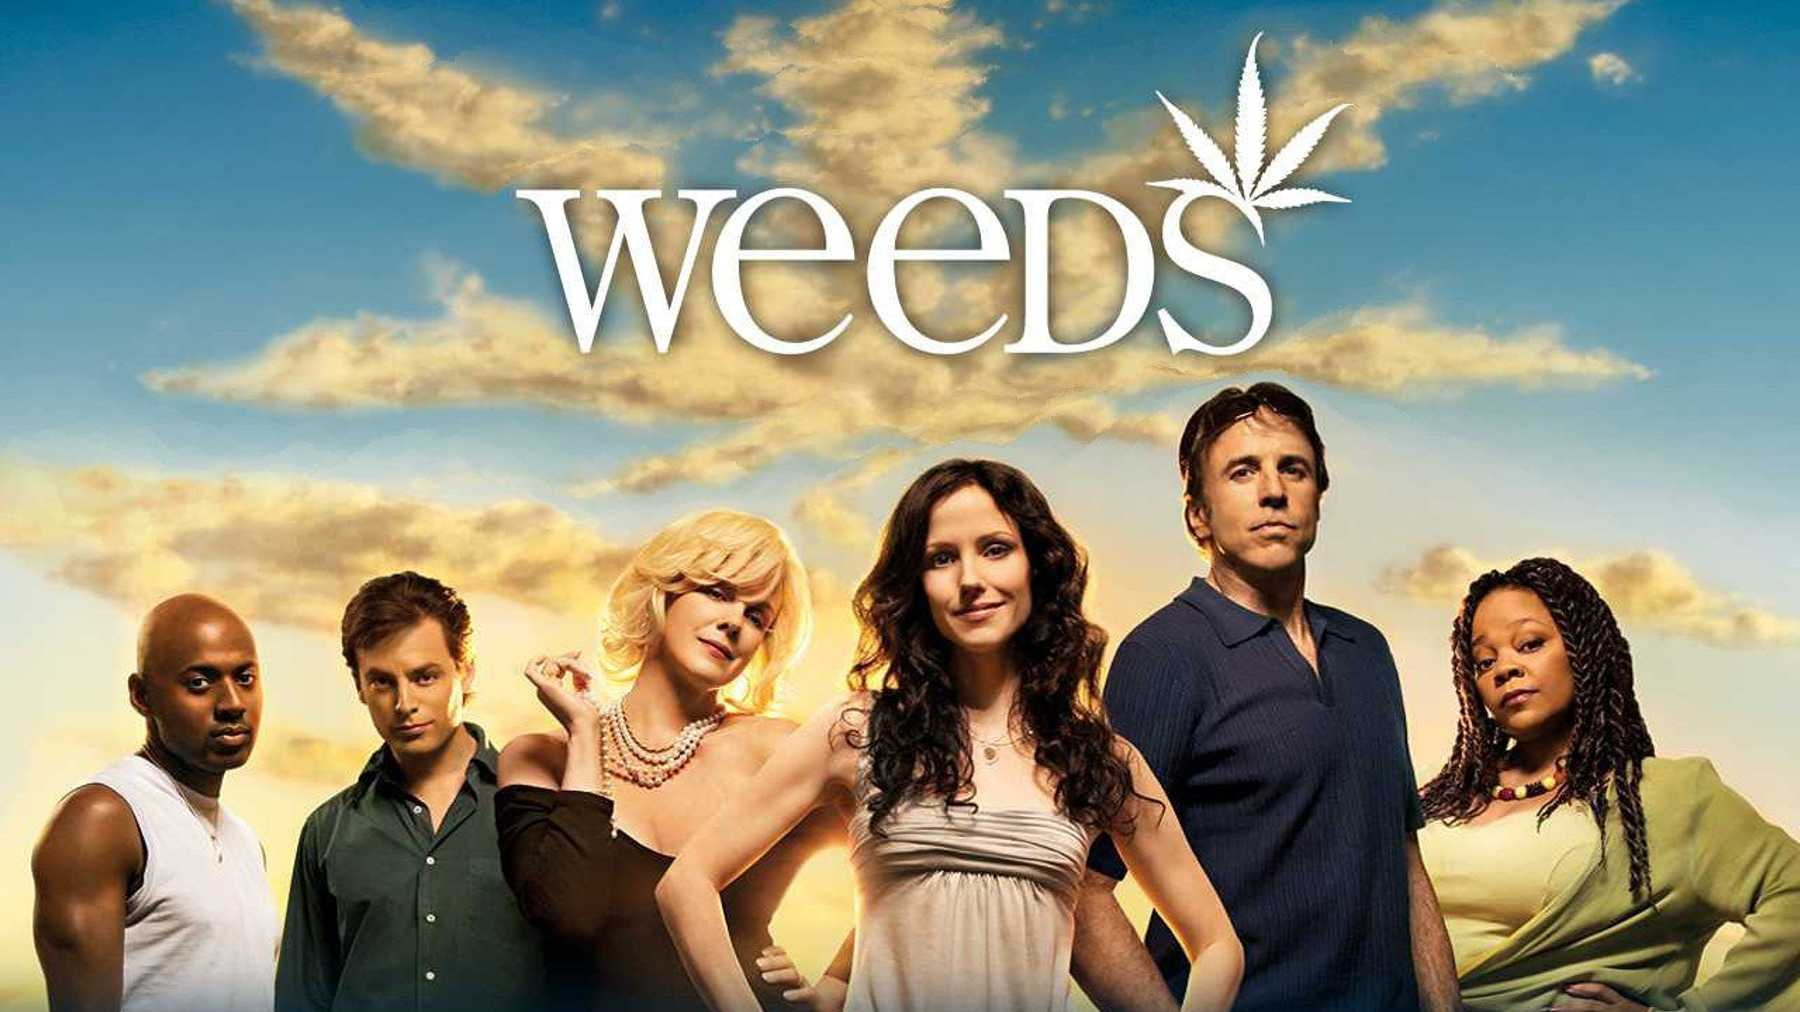 Weeds TV Show Cast Poster